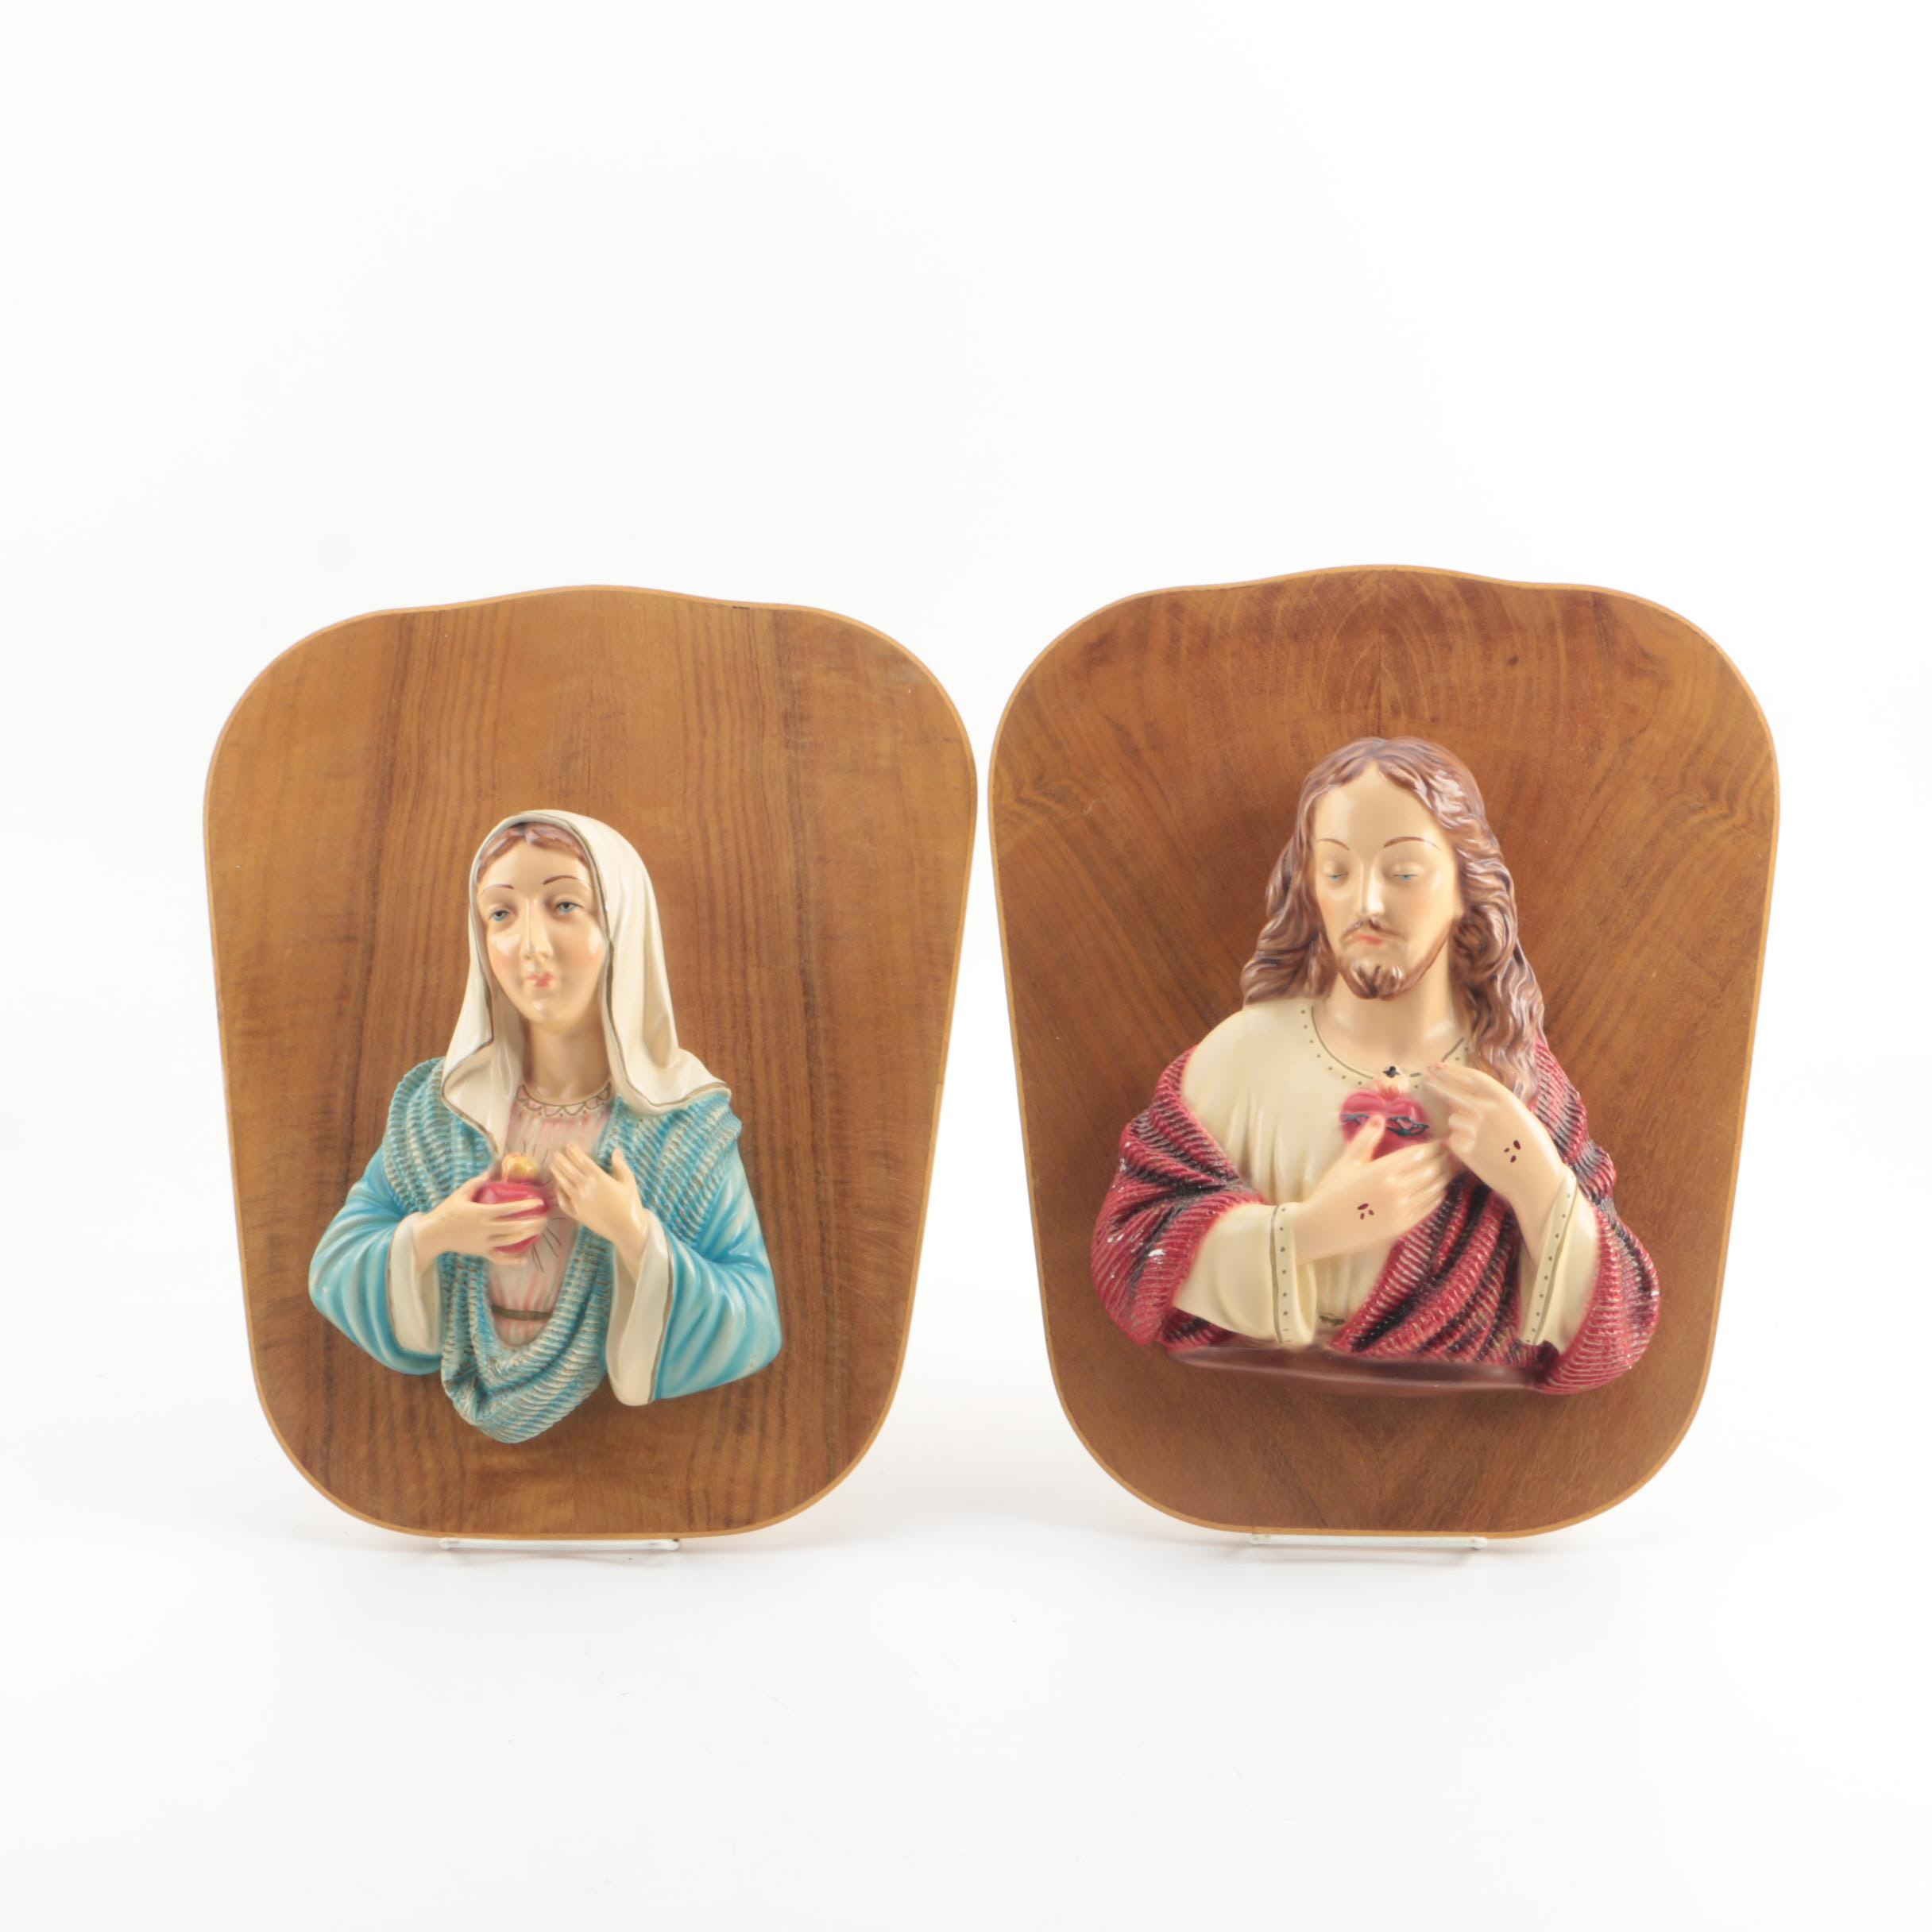 Italian Mounted Chalkware Busts of The Sacred Heart of Jesus and The Virgin Mary